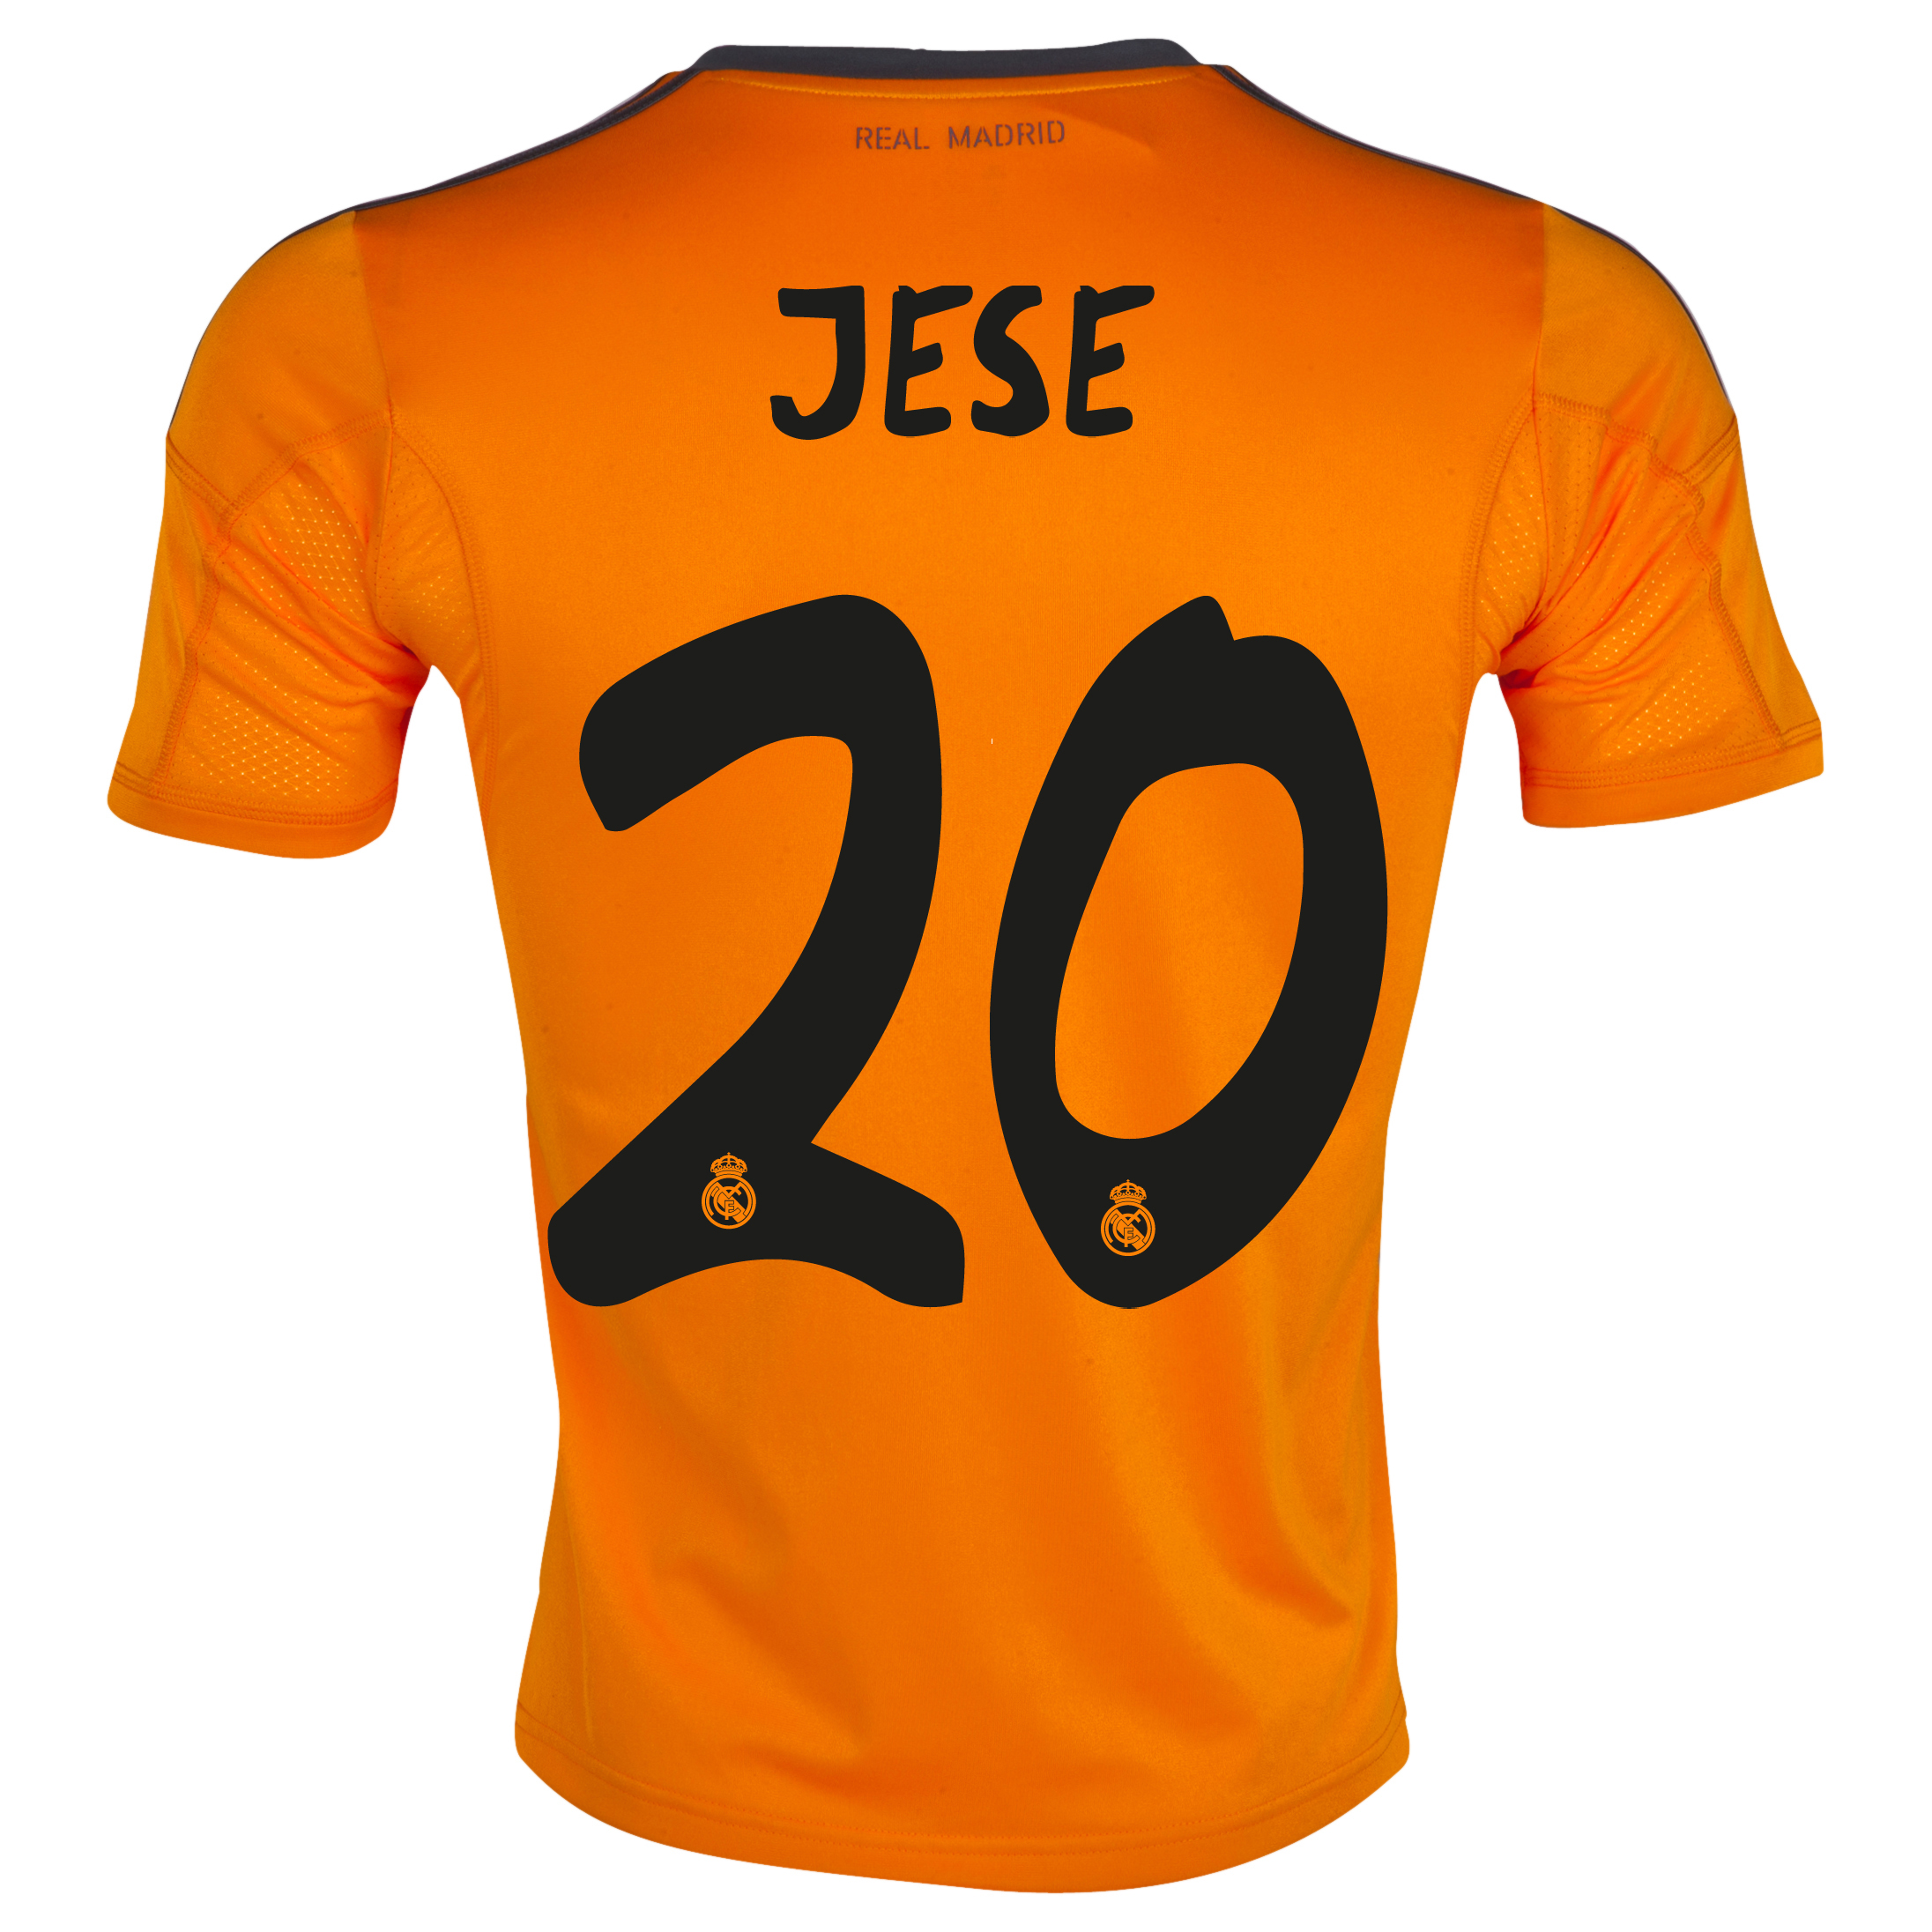 Real Madrid Third Shirt 2013/14 with Jese 20 printing